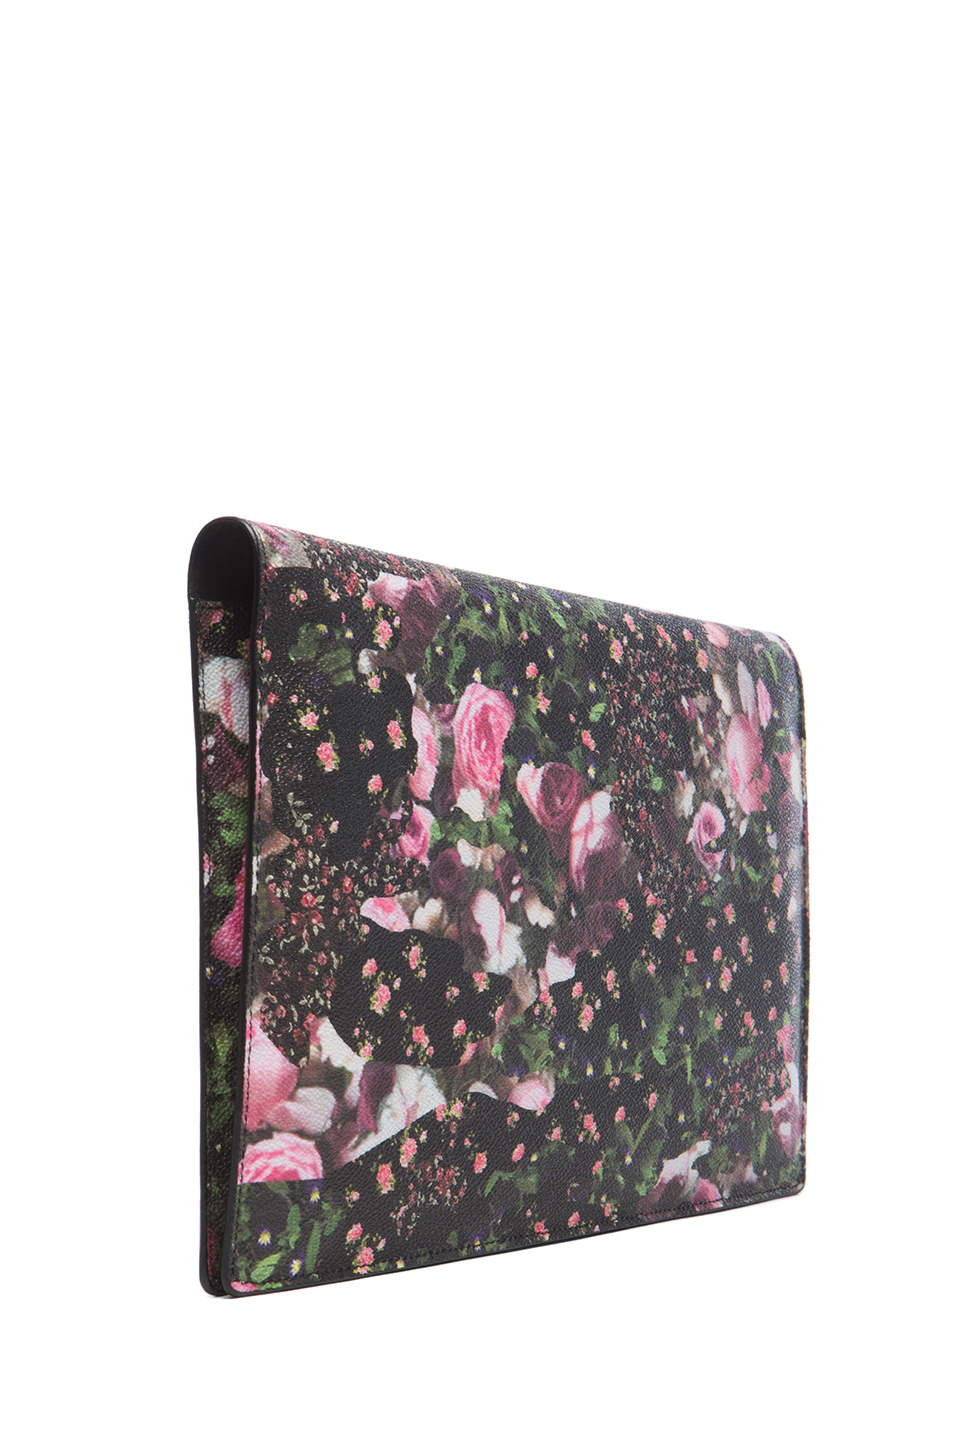 GIVENCHY|Printed Canvas iPad Case in Floral